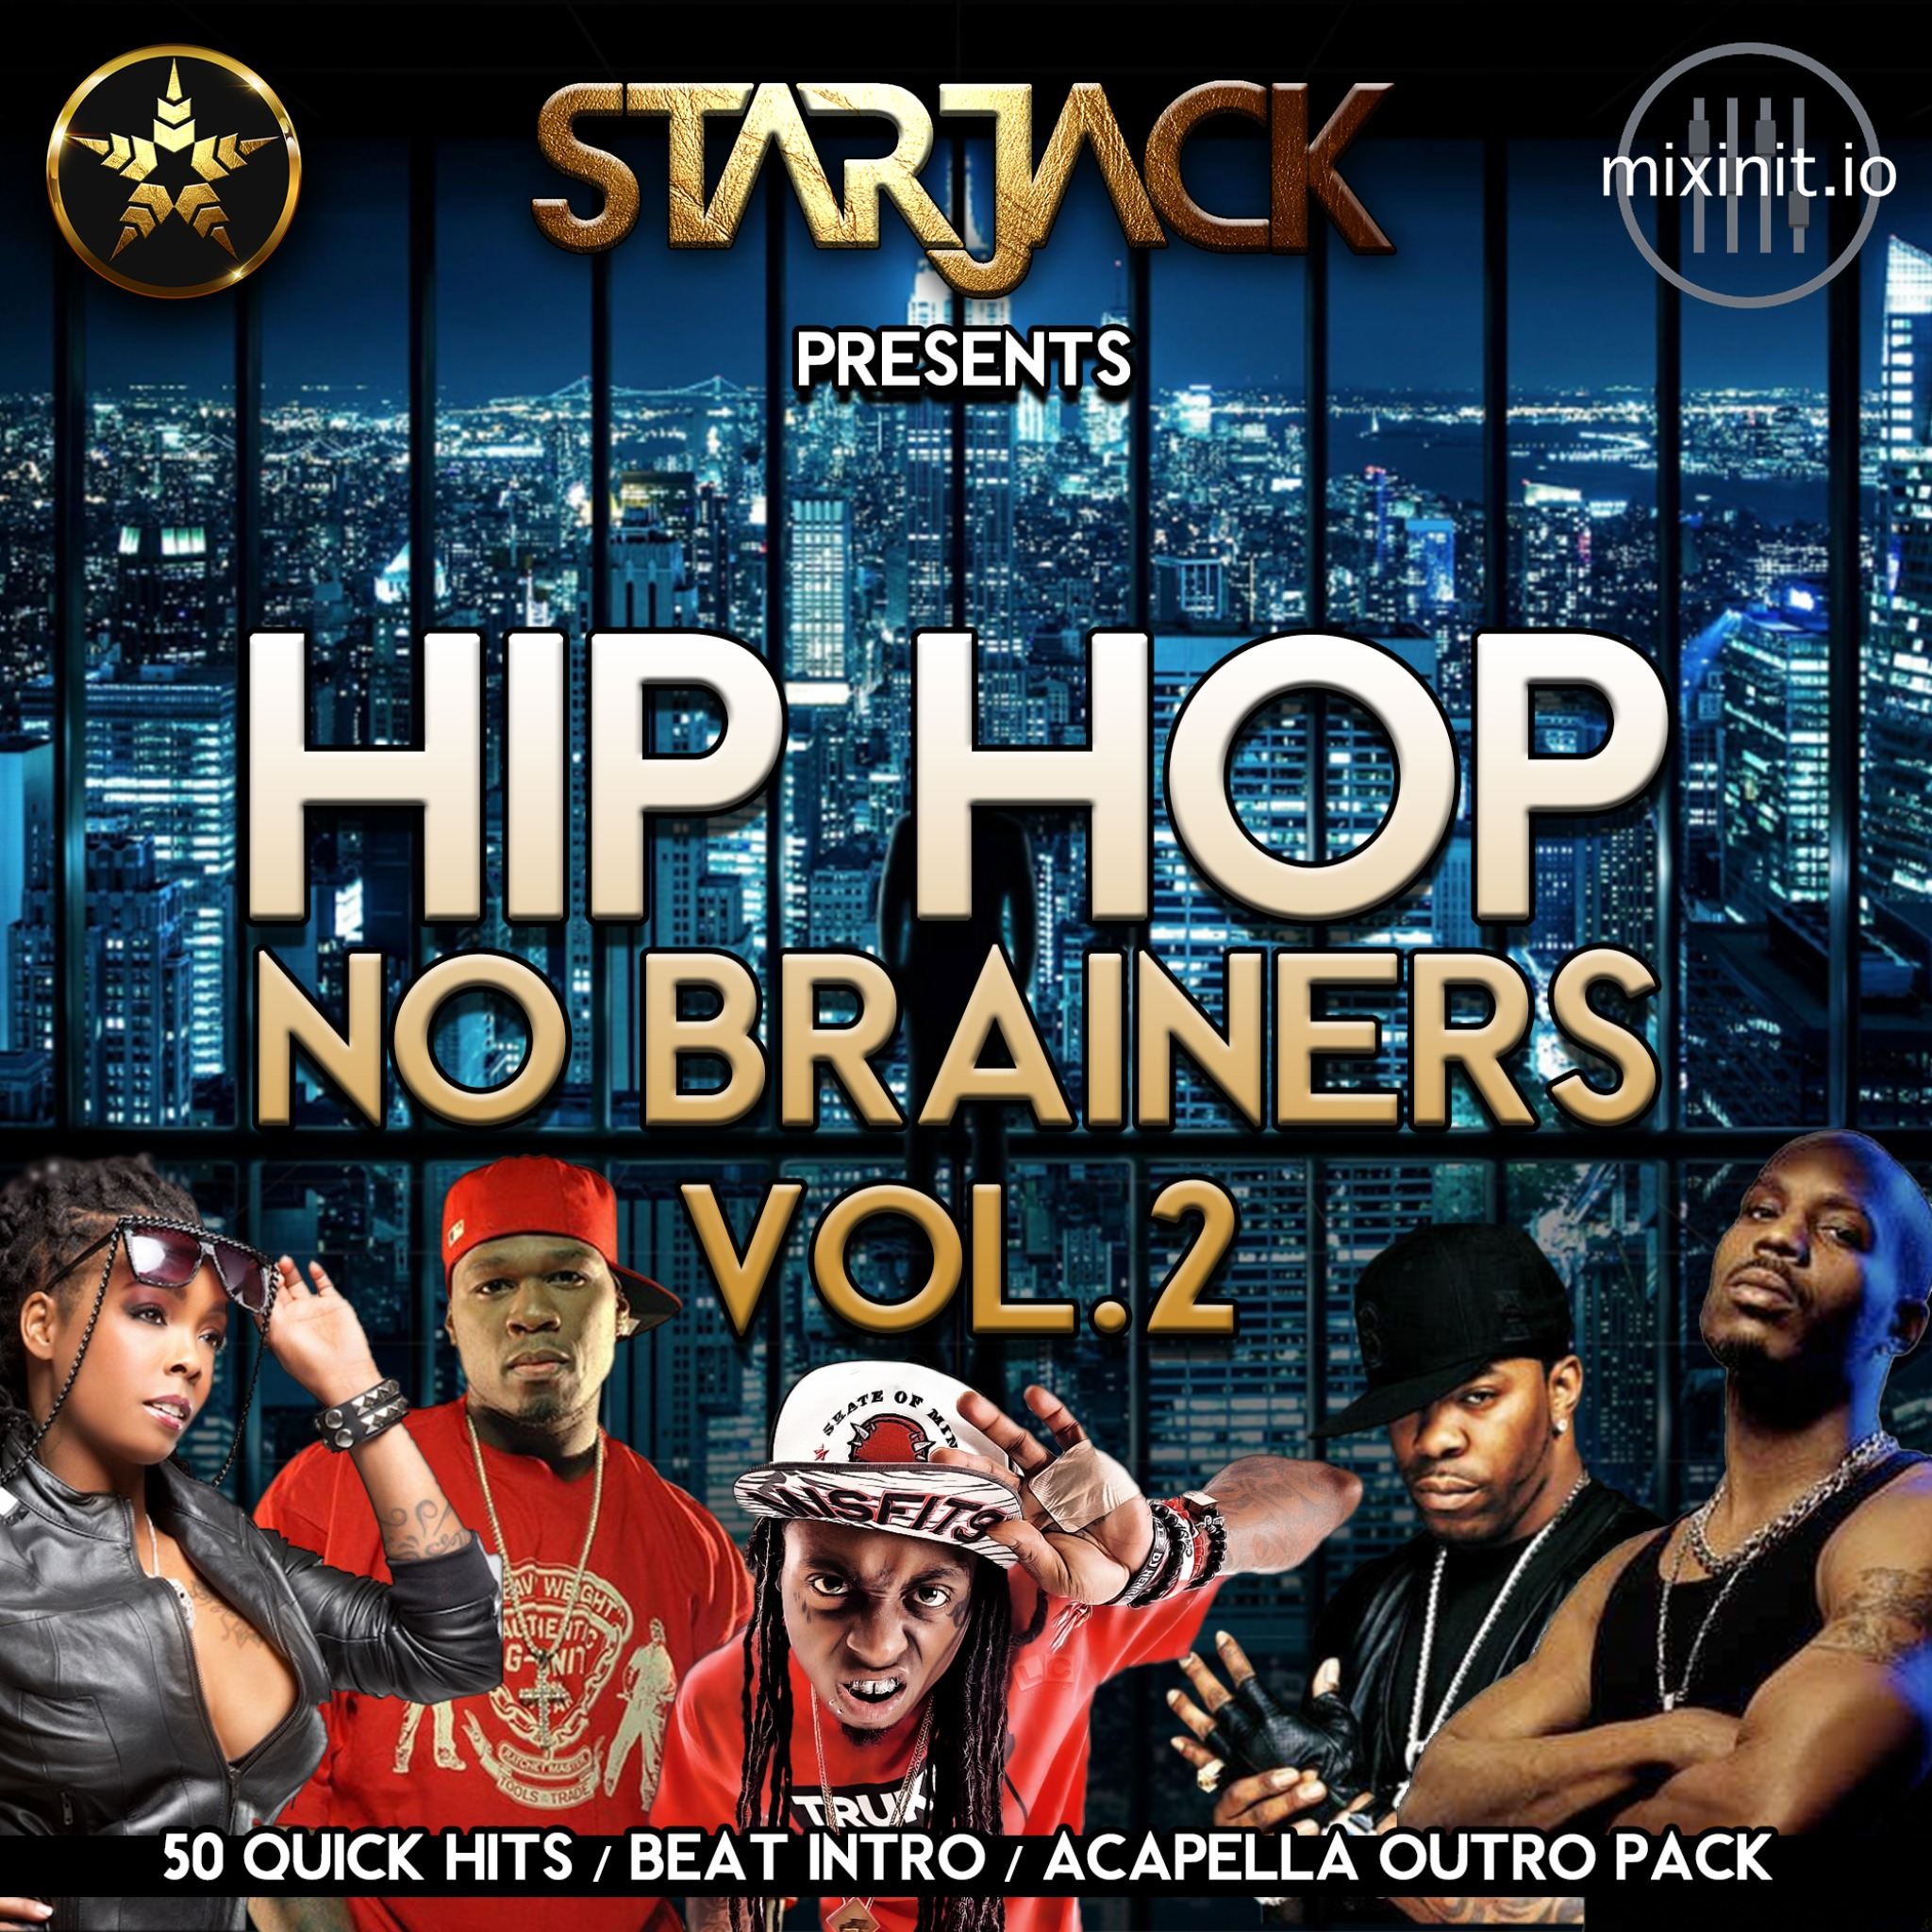 Starjack - Hip-Hop No Brainers Vol. 2 (Acapella Out's 50 Pack)